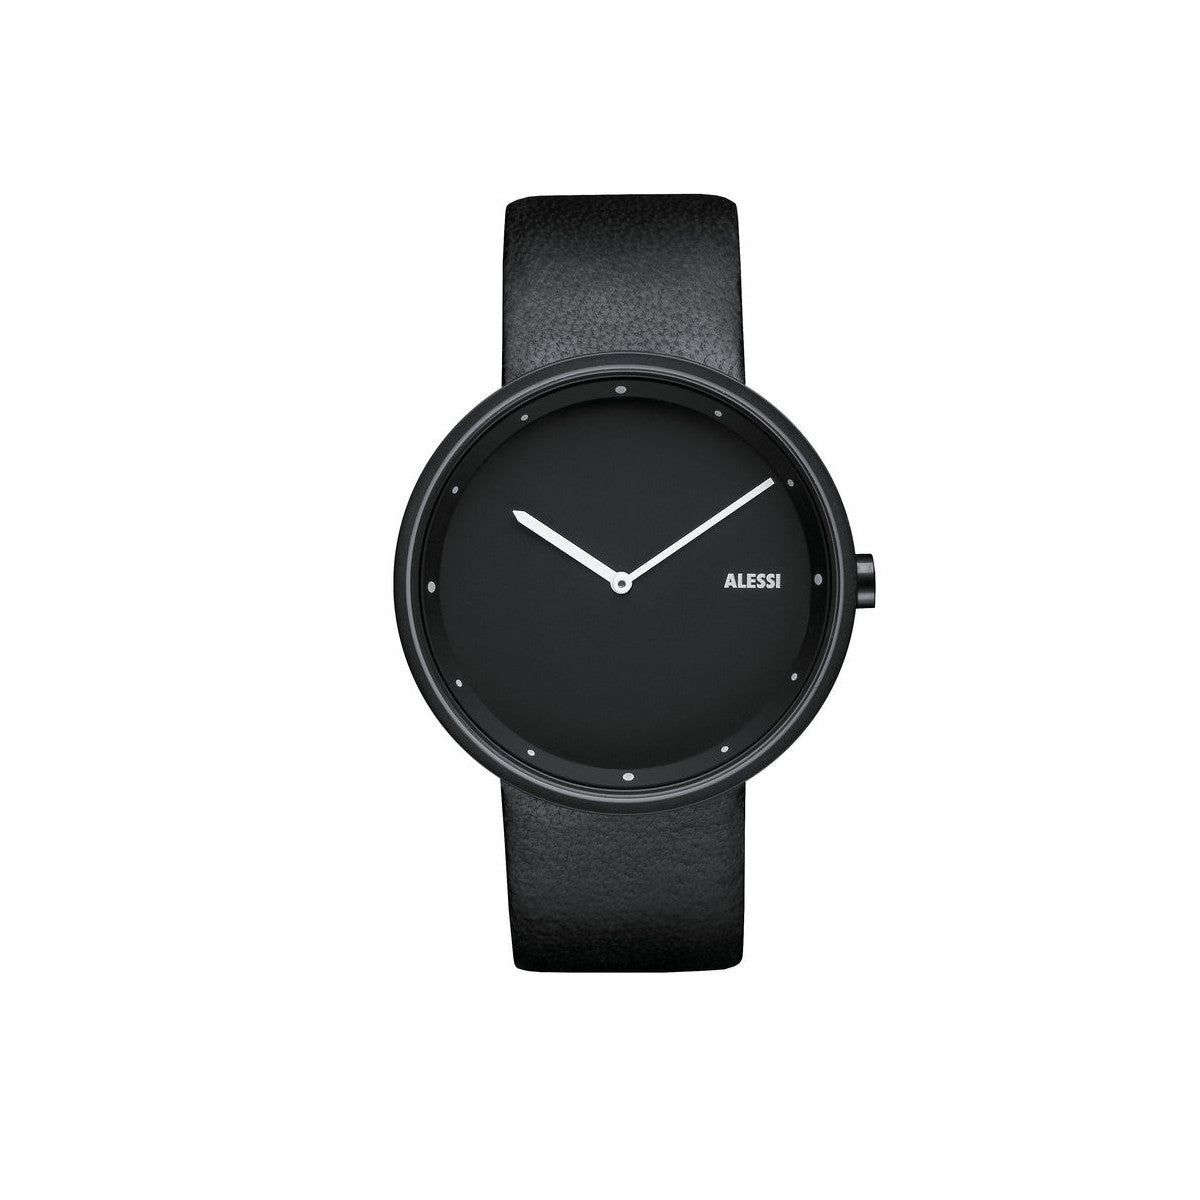 replacement strap for outtime watch black dial black strap by  - replacement strap for outtime watch black dial black strap by alessiwatches